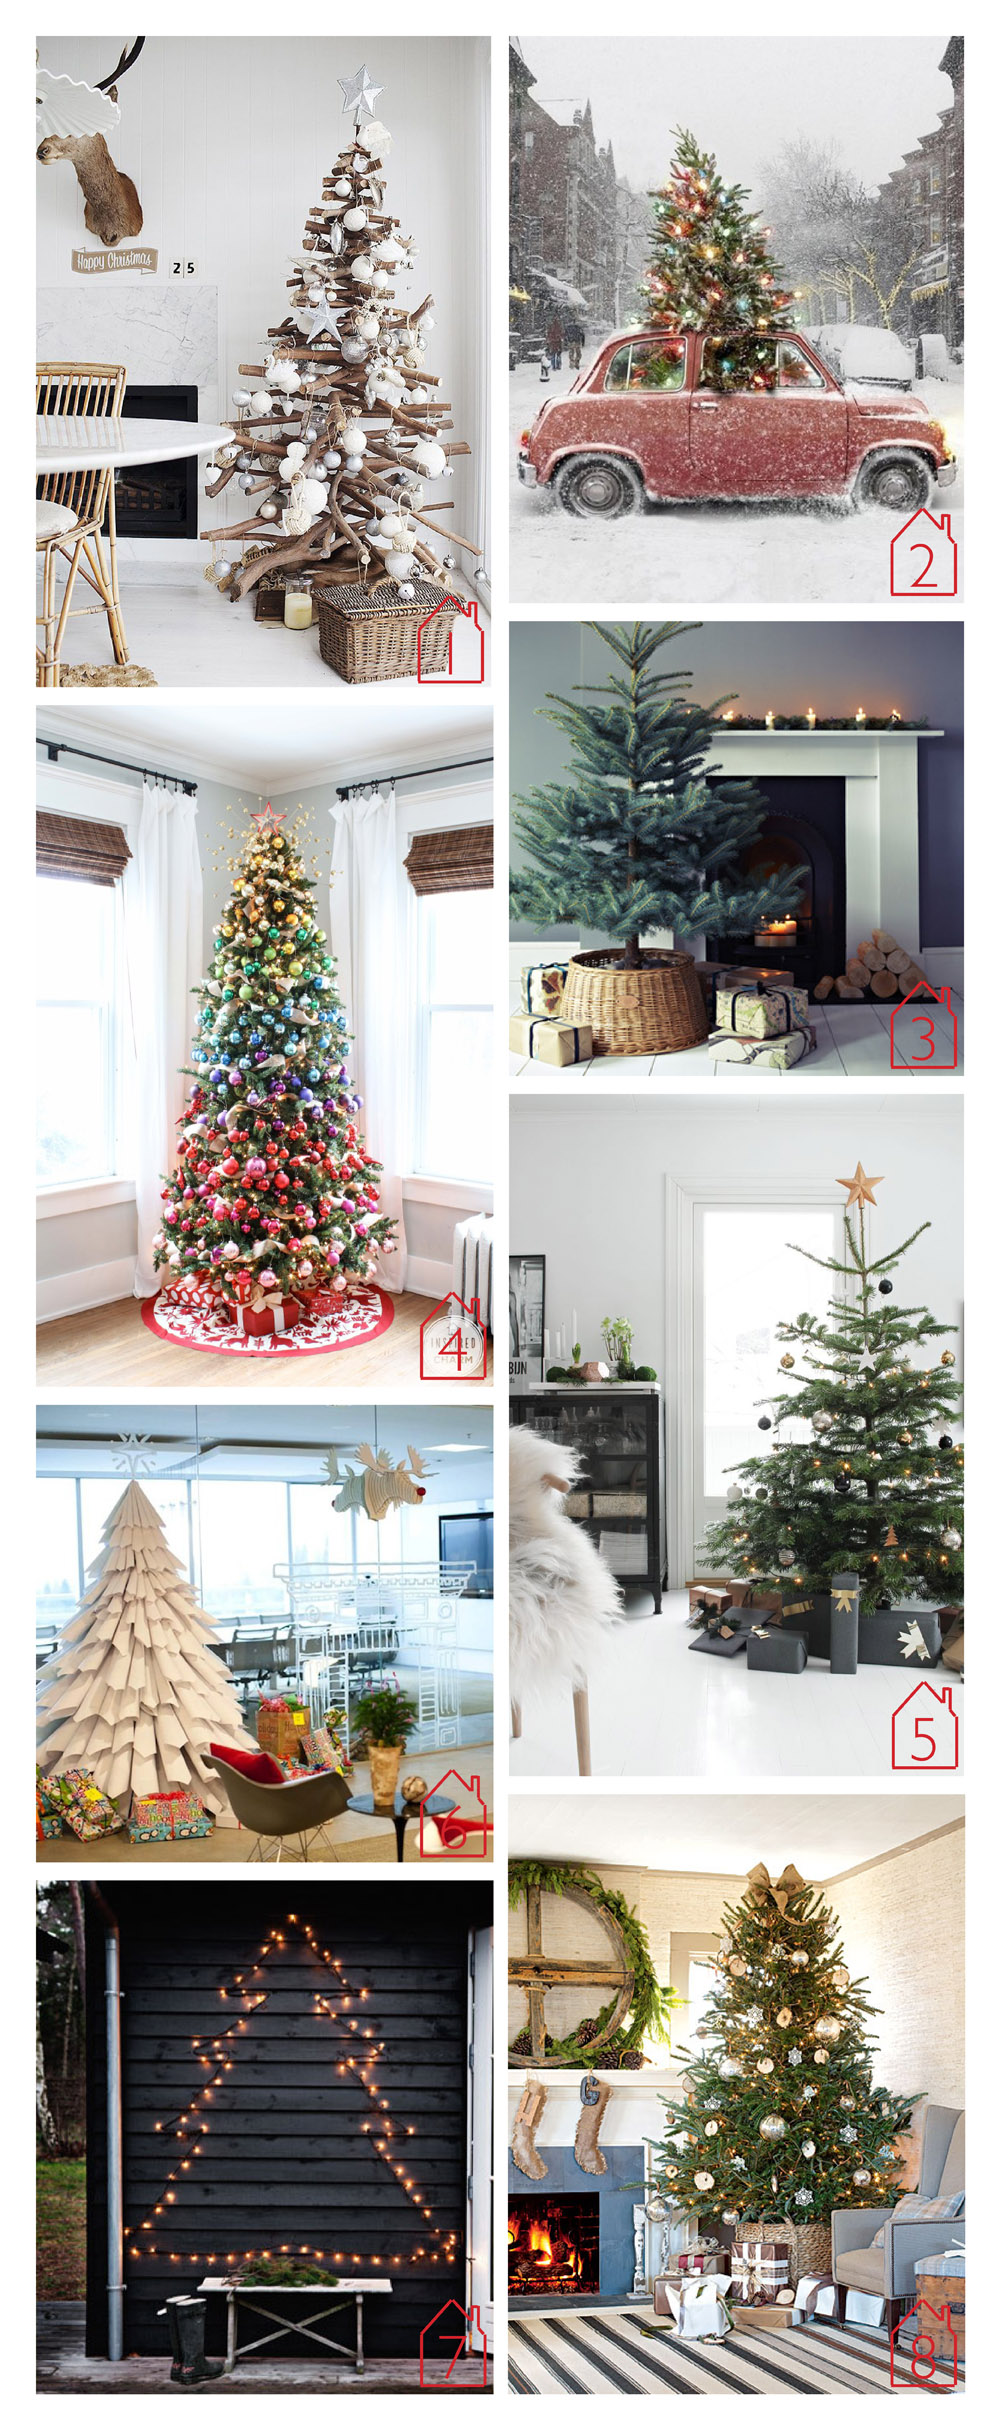 1. wood tree via  Kara Rosenlund   2. tree in car source unknown  3. tree skirt via  Rowen & Wren   4. color tree via  A Colorful Charm   5. nordic tree via  Stylizimo   6. paper tree by  Gensler   7. scandinavian tree via  atelier rue verte   8. casual christmas via  Home Ideas /Cottage Living